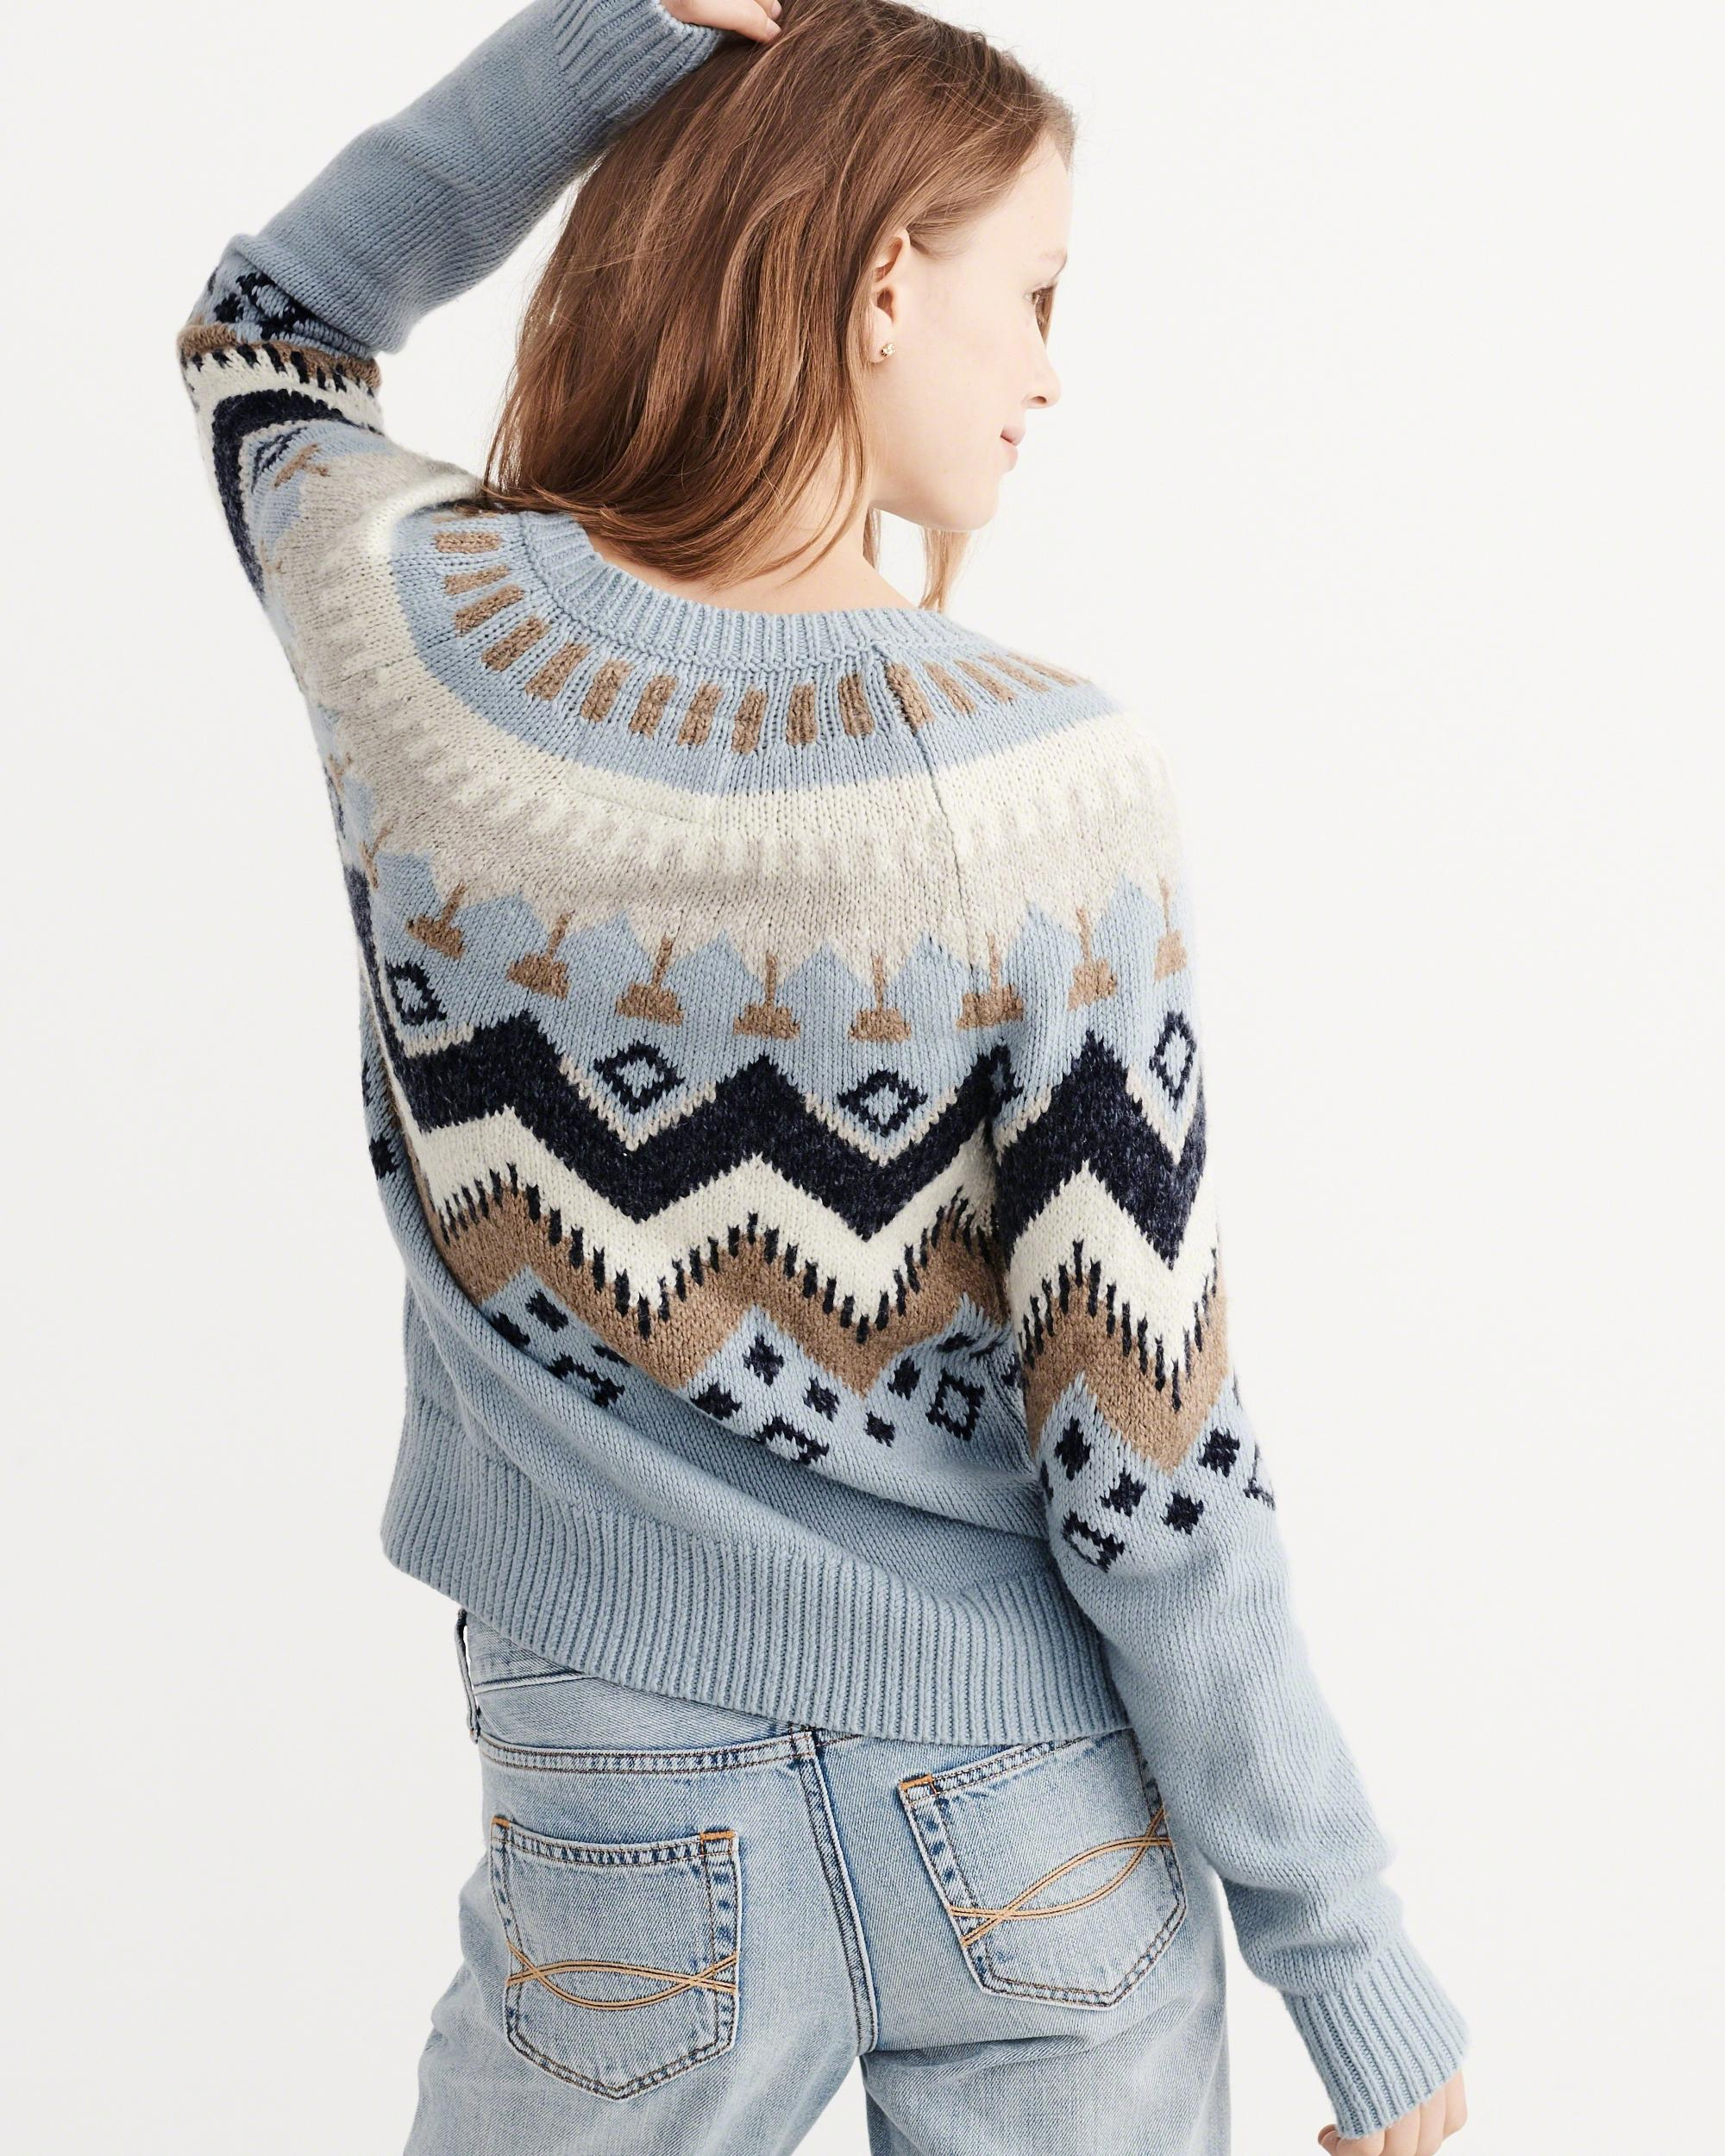 Abercrombie & fitch Fair Isle Pullover Sweater in Blue | Lyst